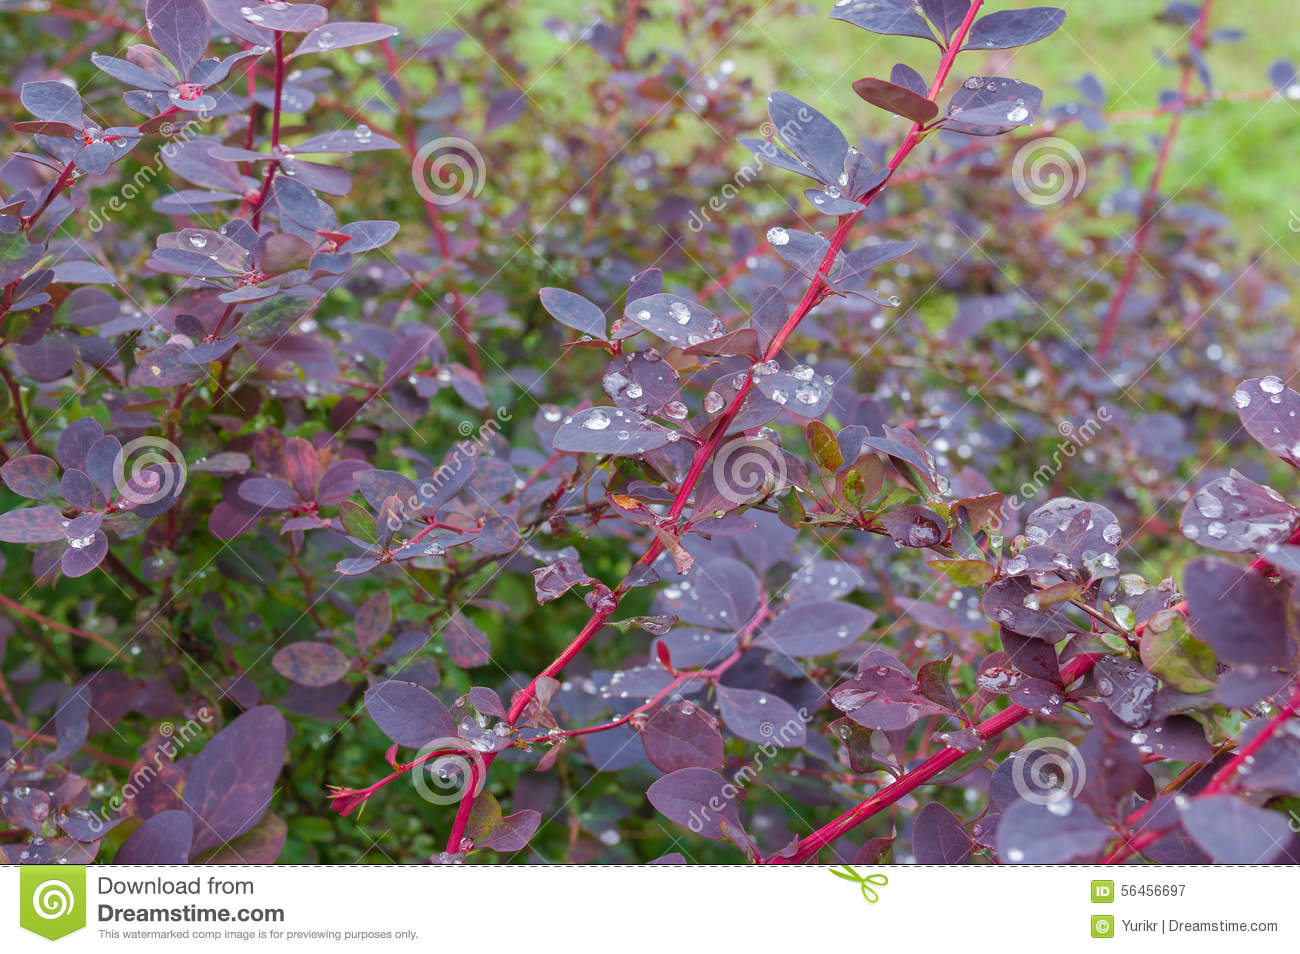 Shrub of barberry after rain